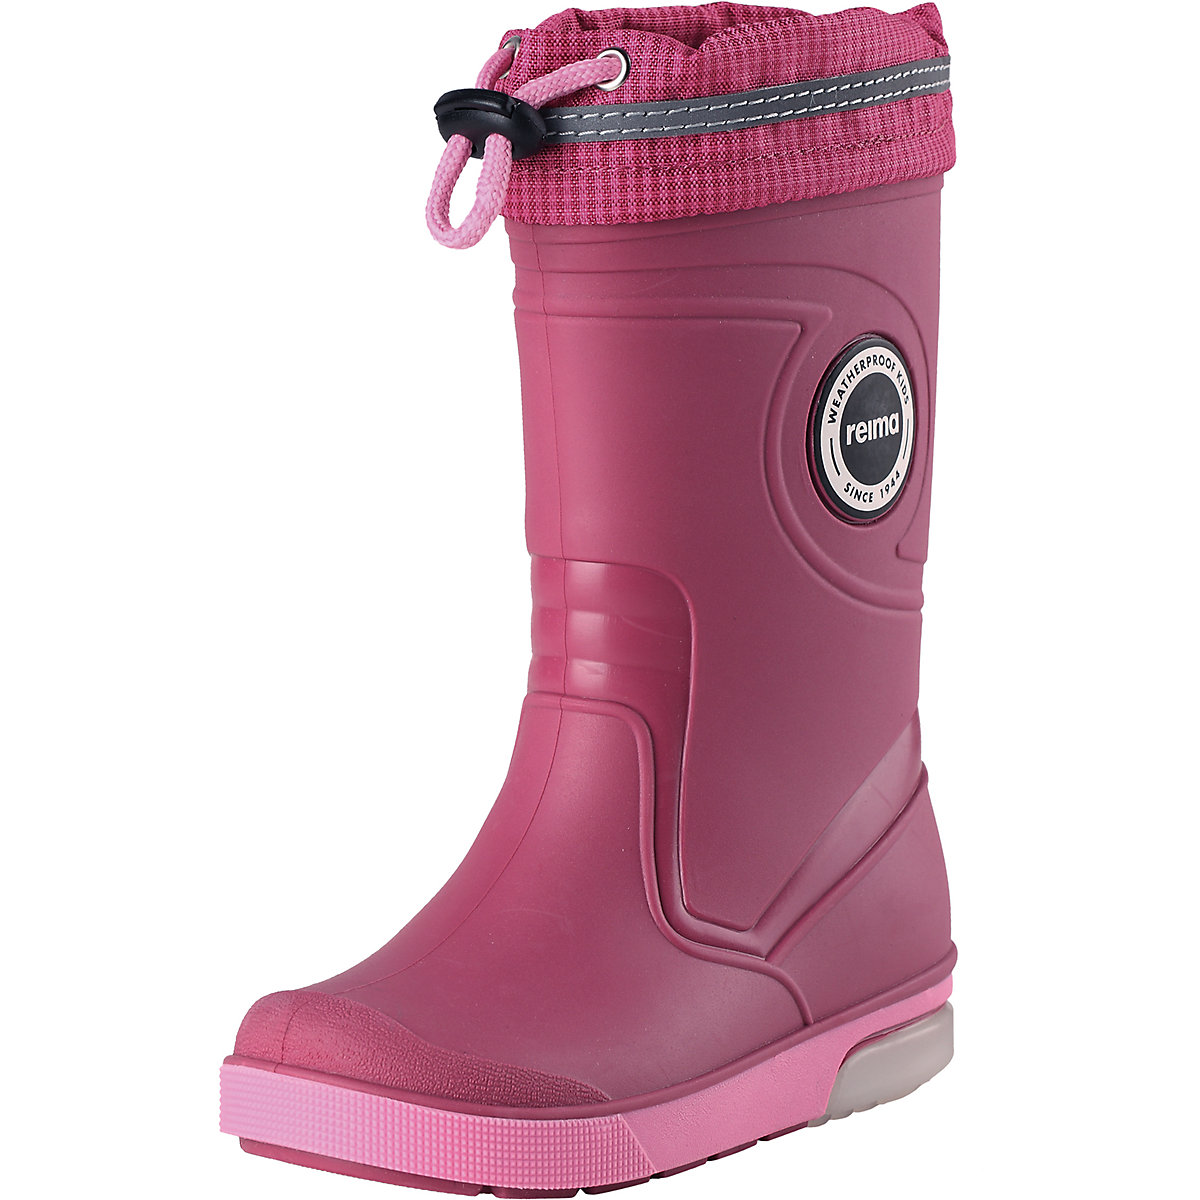 REIMA Boots 8624800 for girls spring autumn girl  children shoes reima boots 8624800 for girls spring autumn girl baby shoes